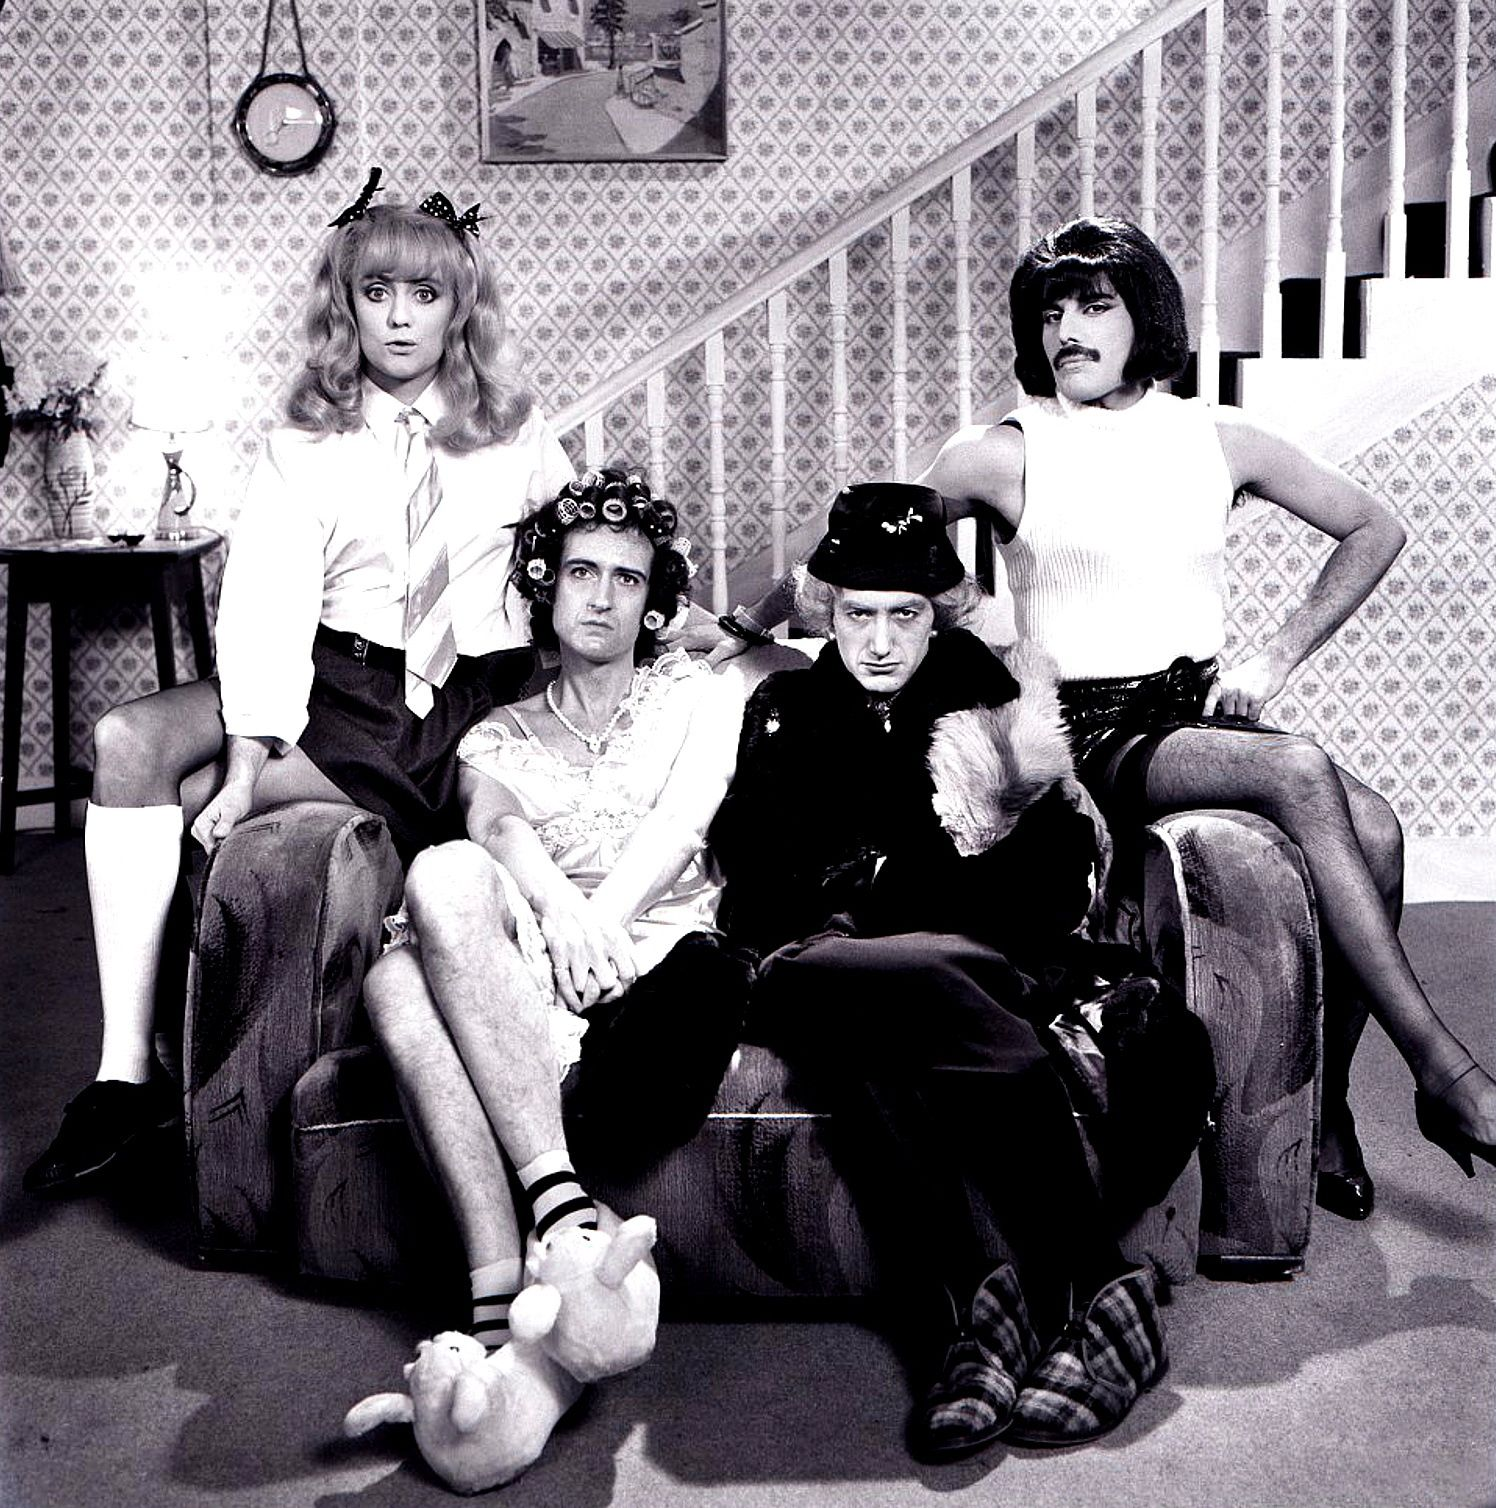 Roger Taylor (Queen) - I Want To Break Free (1982)